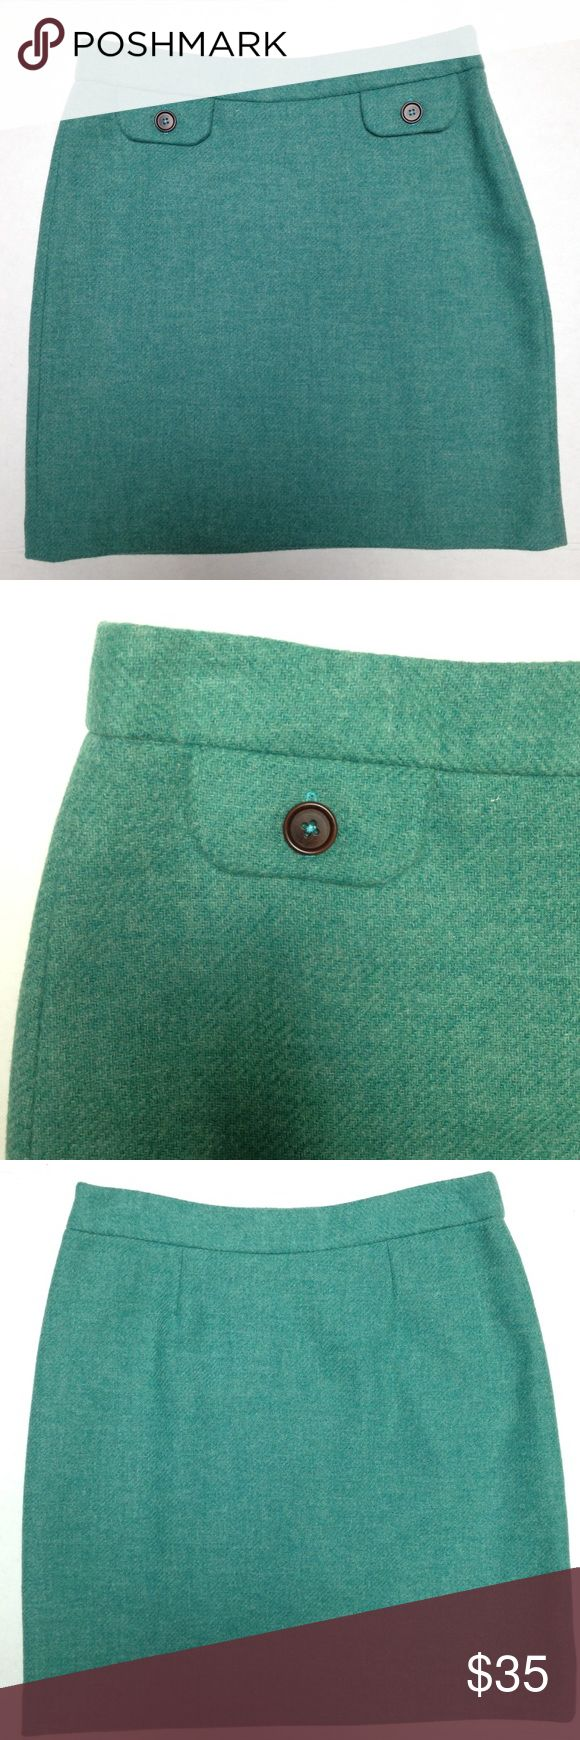 Boden Tiffany Blue Wool Skirt EUC Boden Tiffany Blue 100% Wool Skirt. UK size 10R or US 8. Faux pockets. Zip side. Fully lined. Too small for me unfortunately.  Approx measurements:  15 in across  18.5 in long Boden Skirts Mini